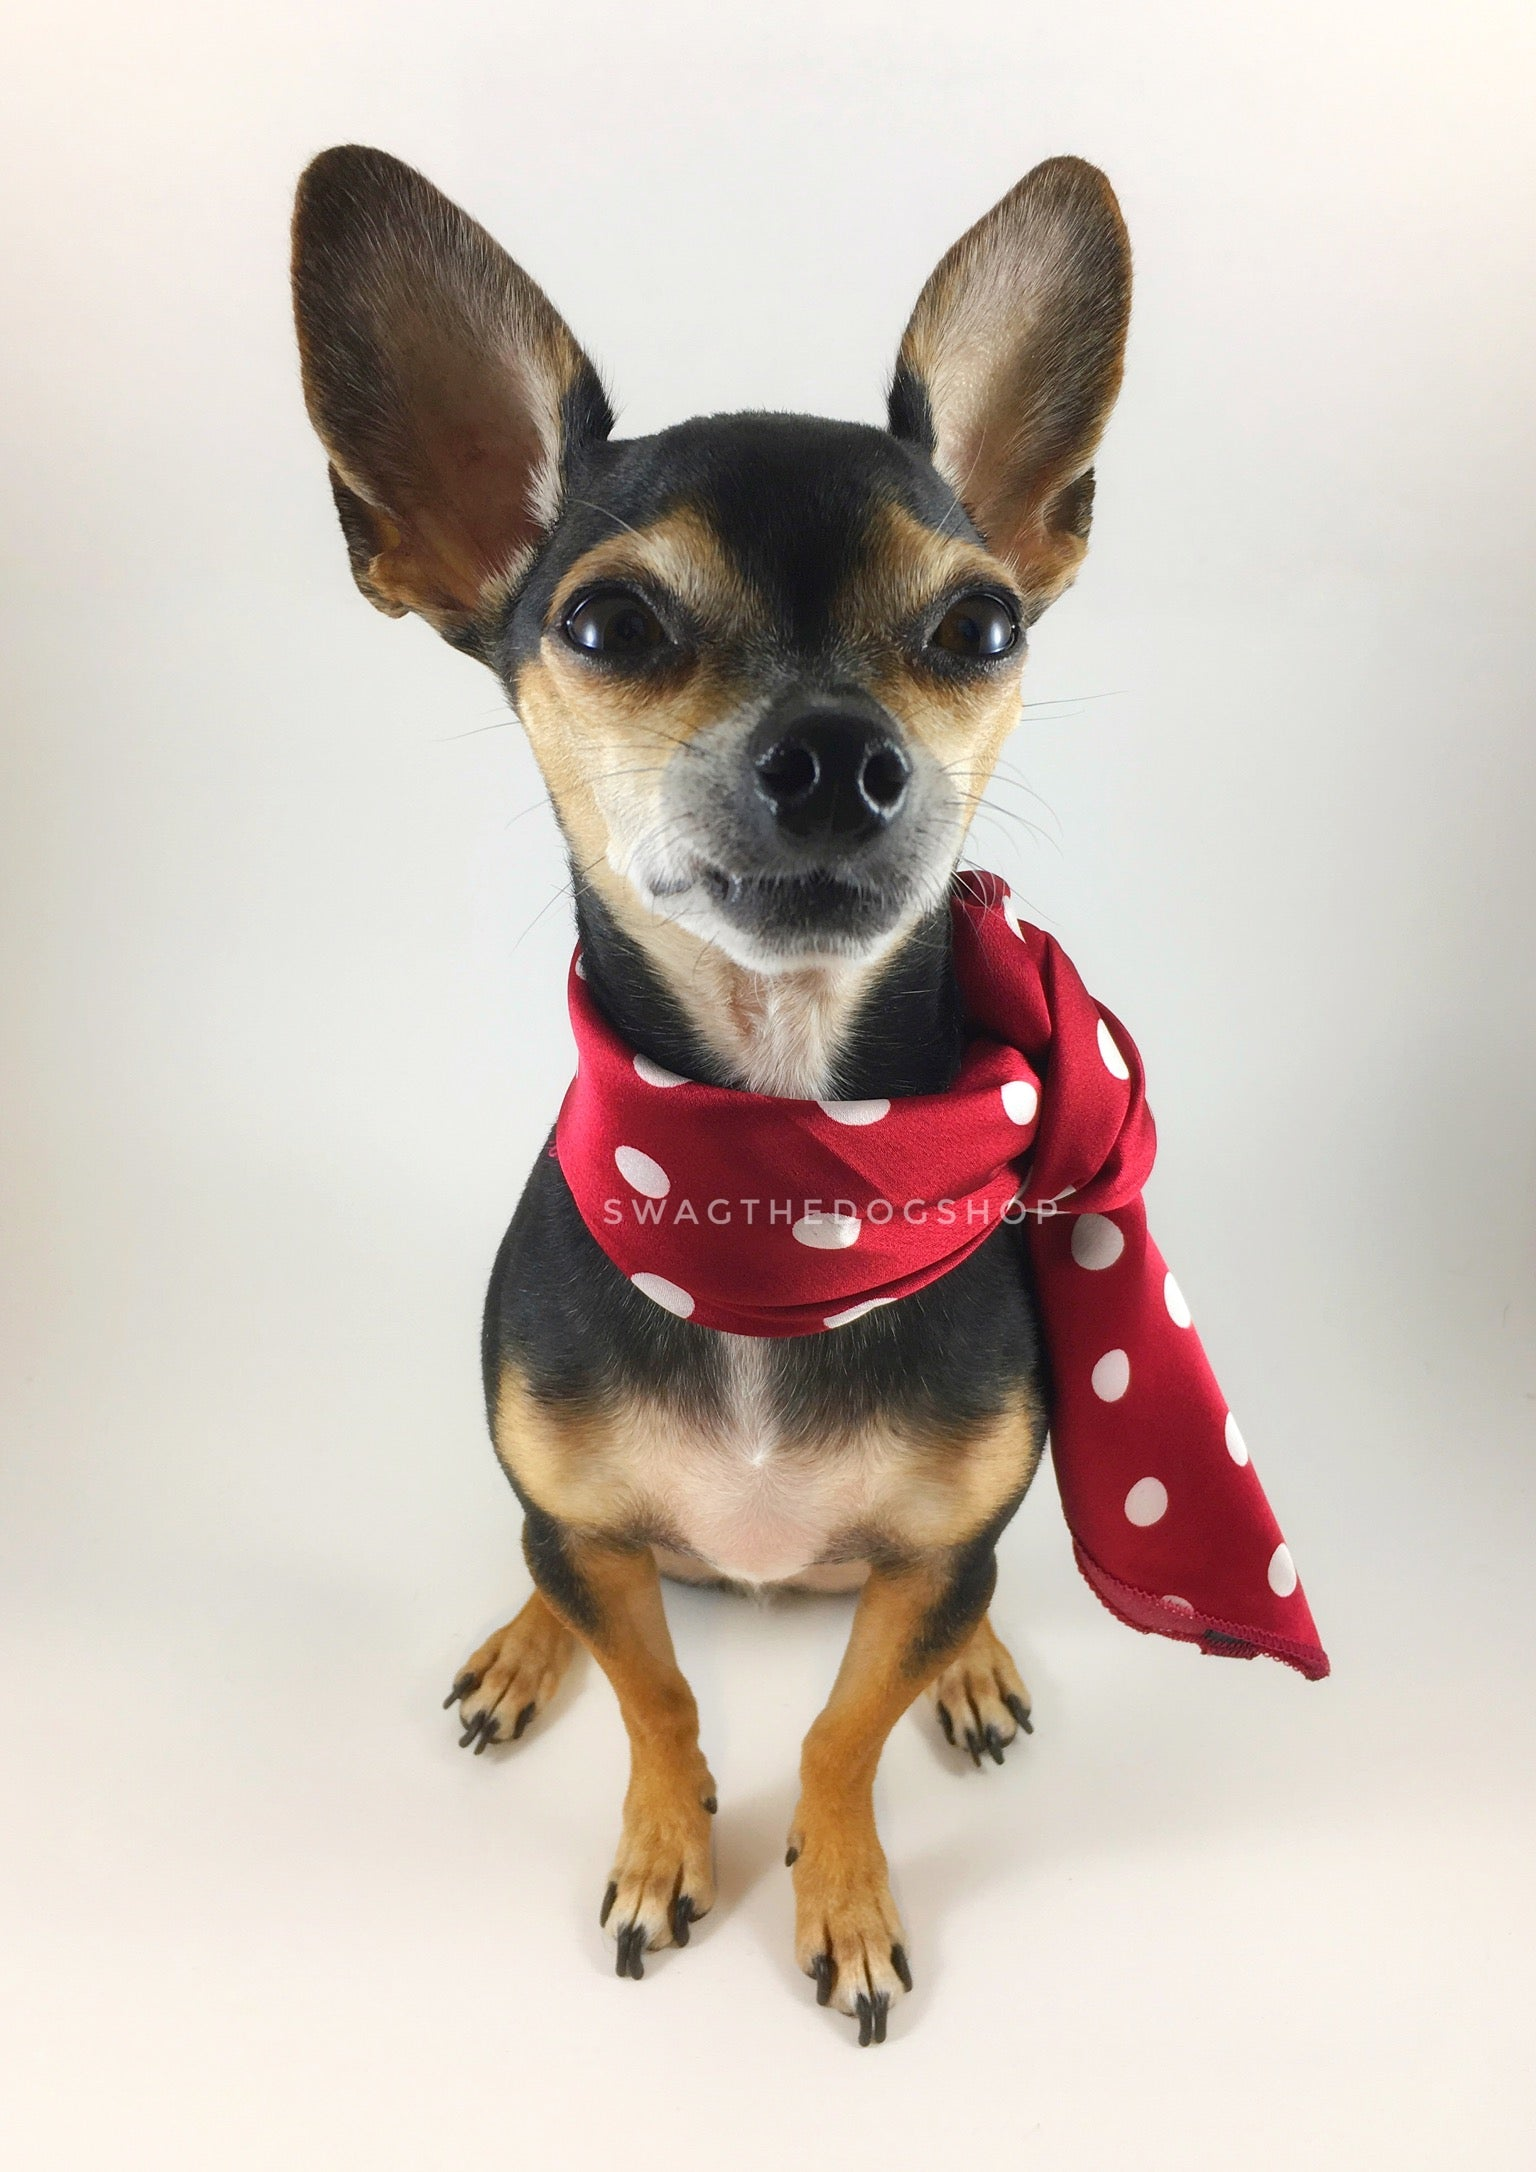 Polka Dot Burgundy Swagdana Scarf - Full Frontal View of Cute Chihuahua Wearing Swagdana Scarf as Neckerchief. Dog Bandana. Dog Scarf.